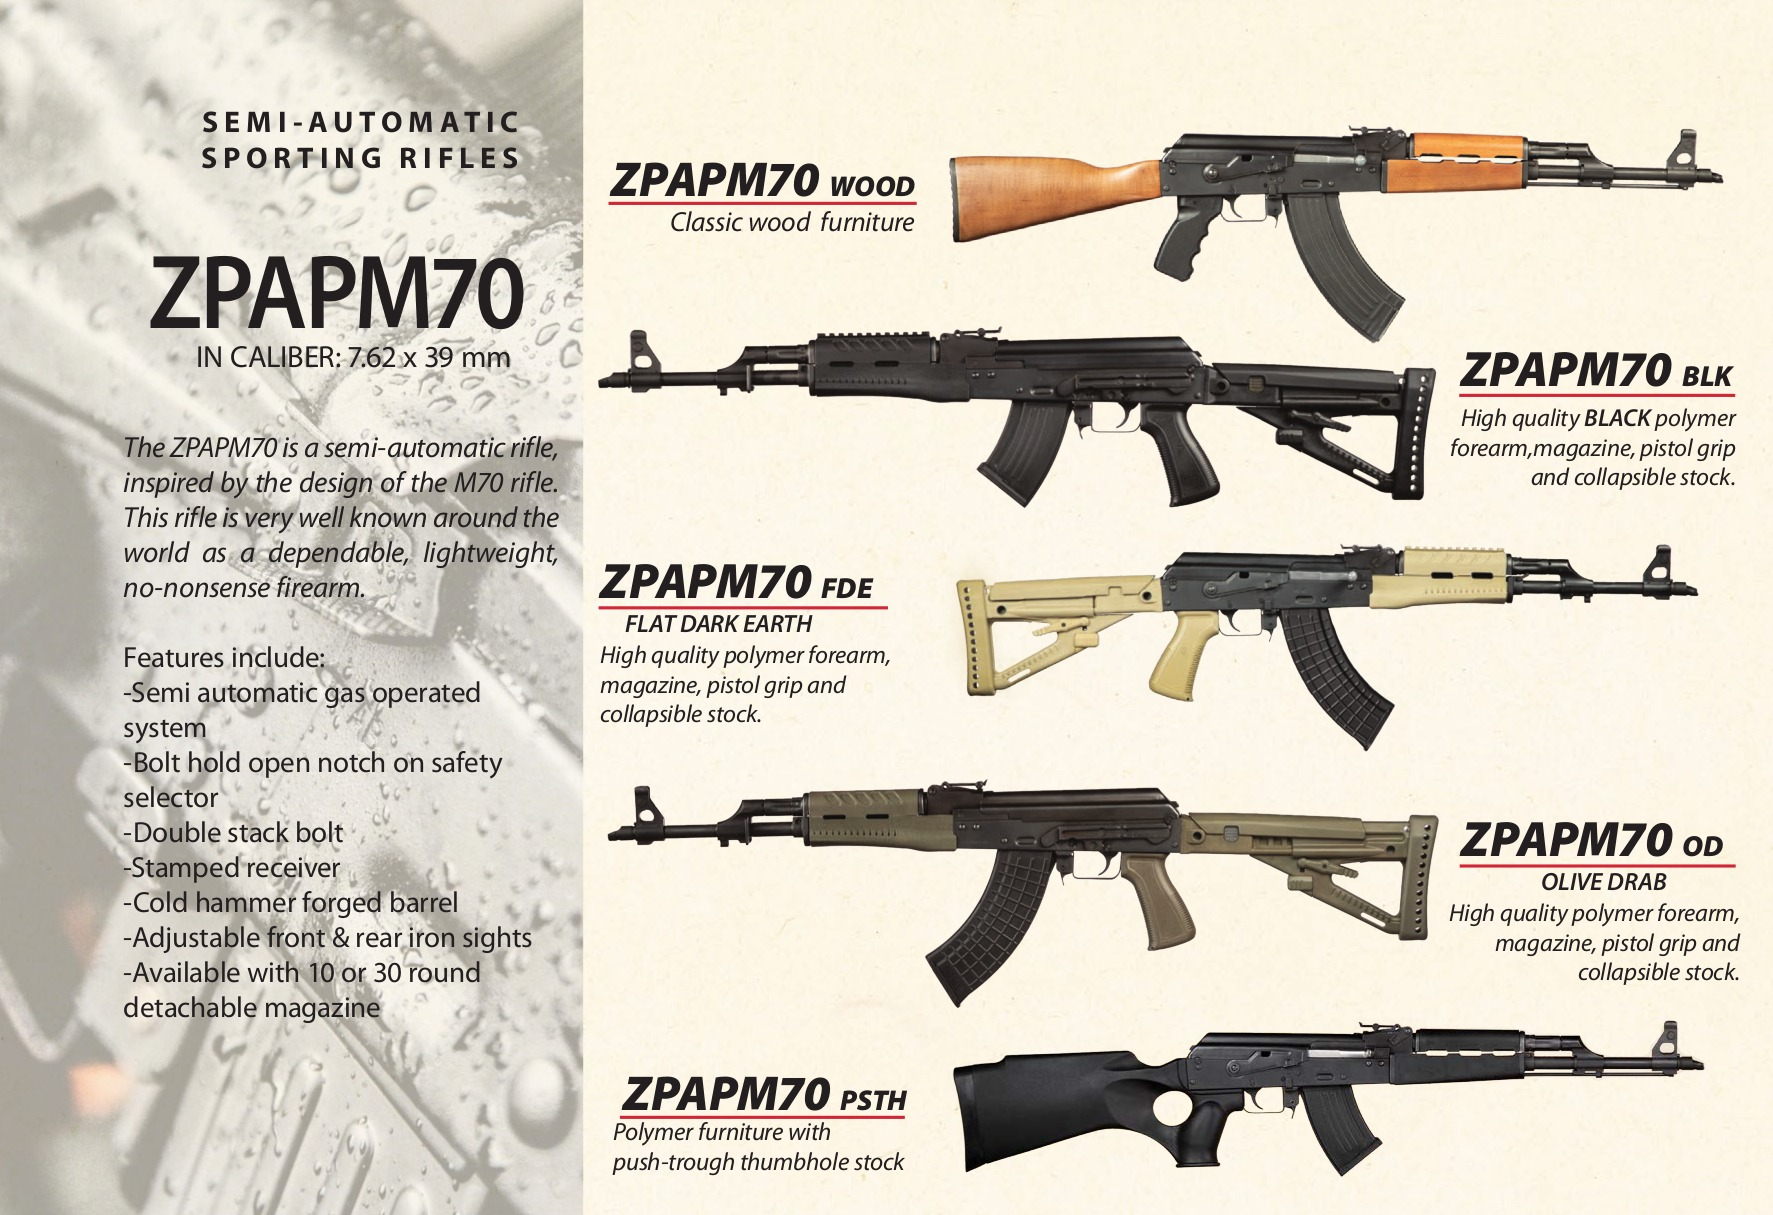 Zastava Arms USA AK sporting rifles